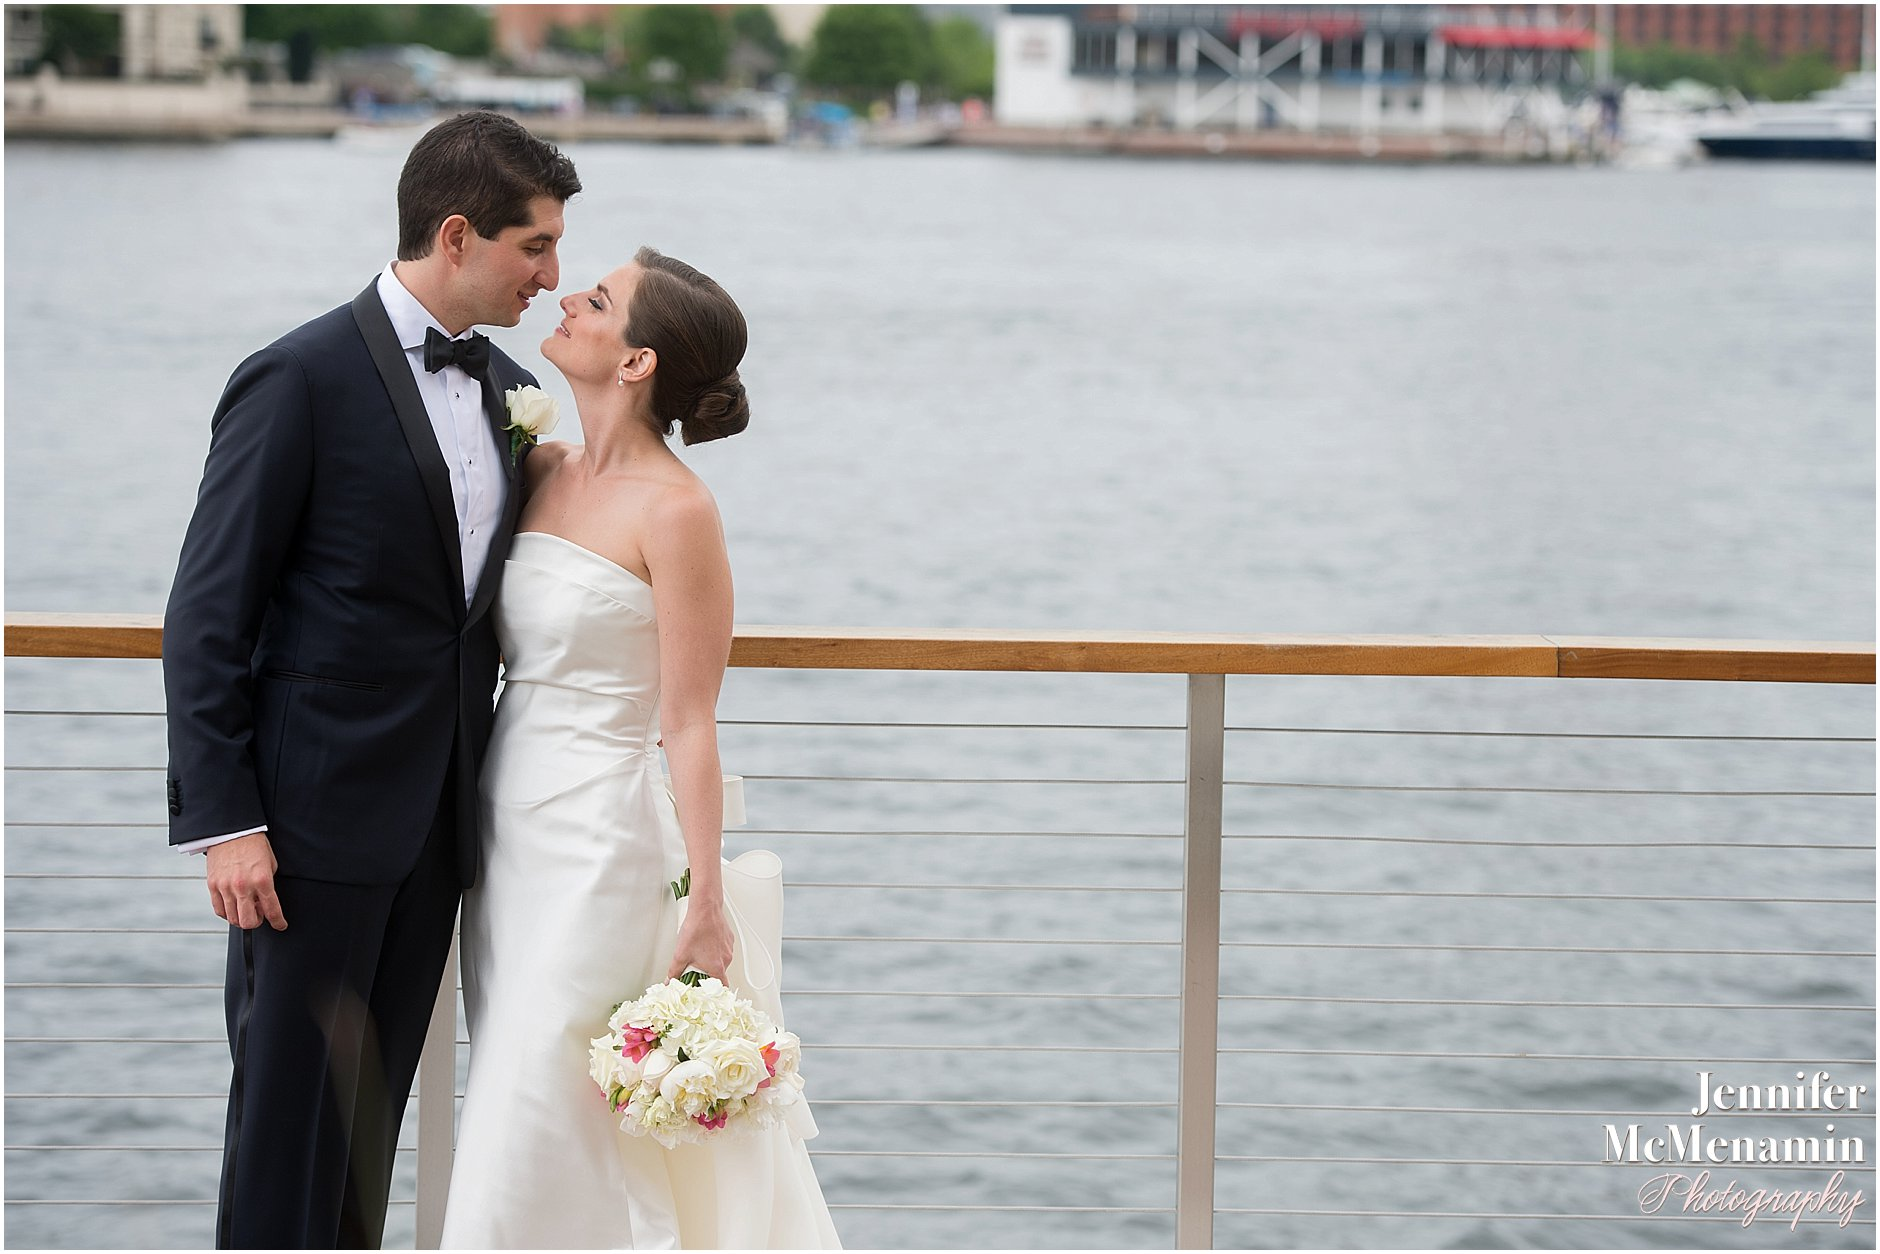 032-Jennifer-McMenamin-Photography-Baltimore-Waterfront-Marriott-wedding_0030